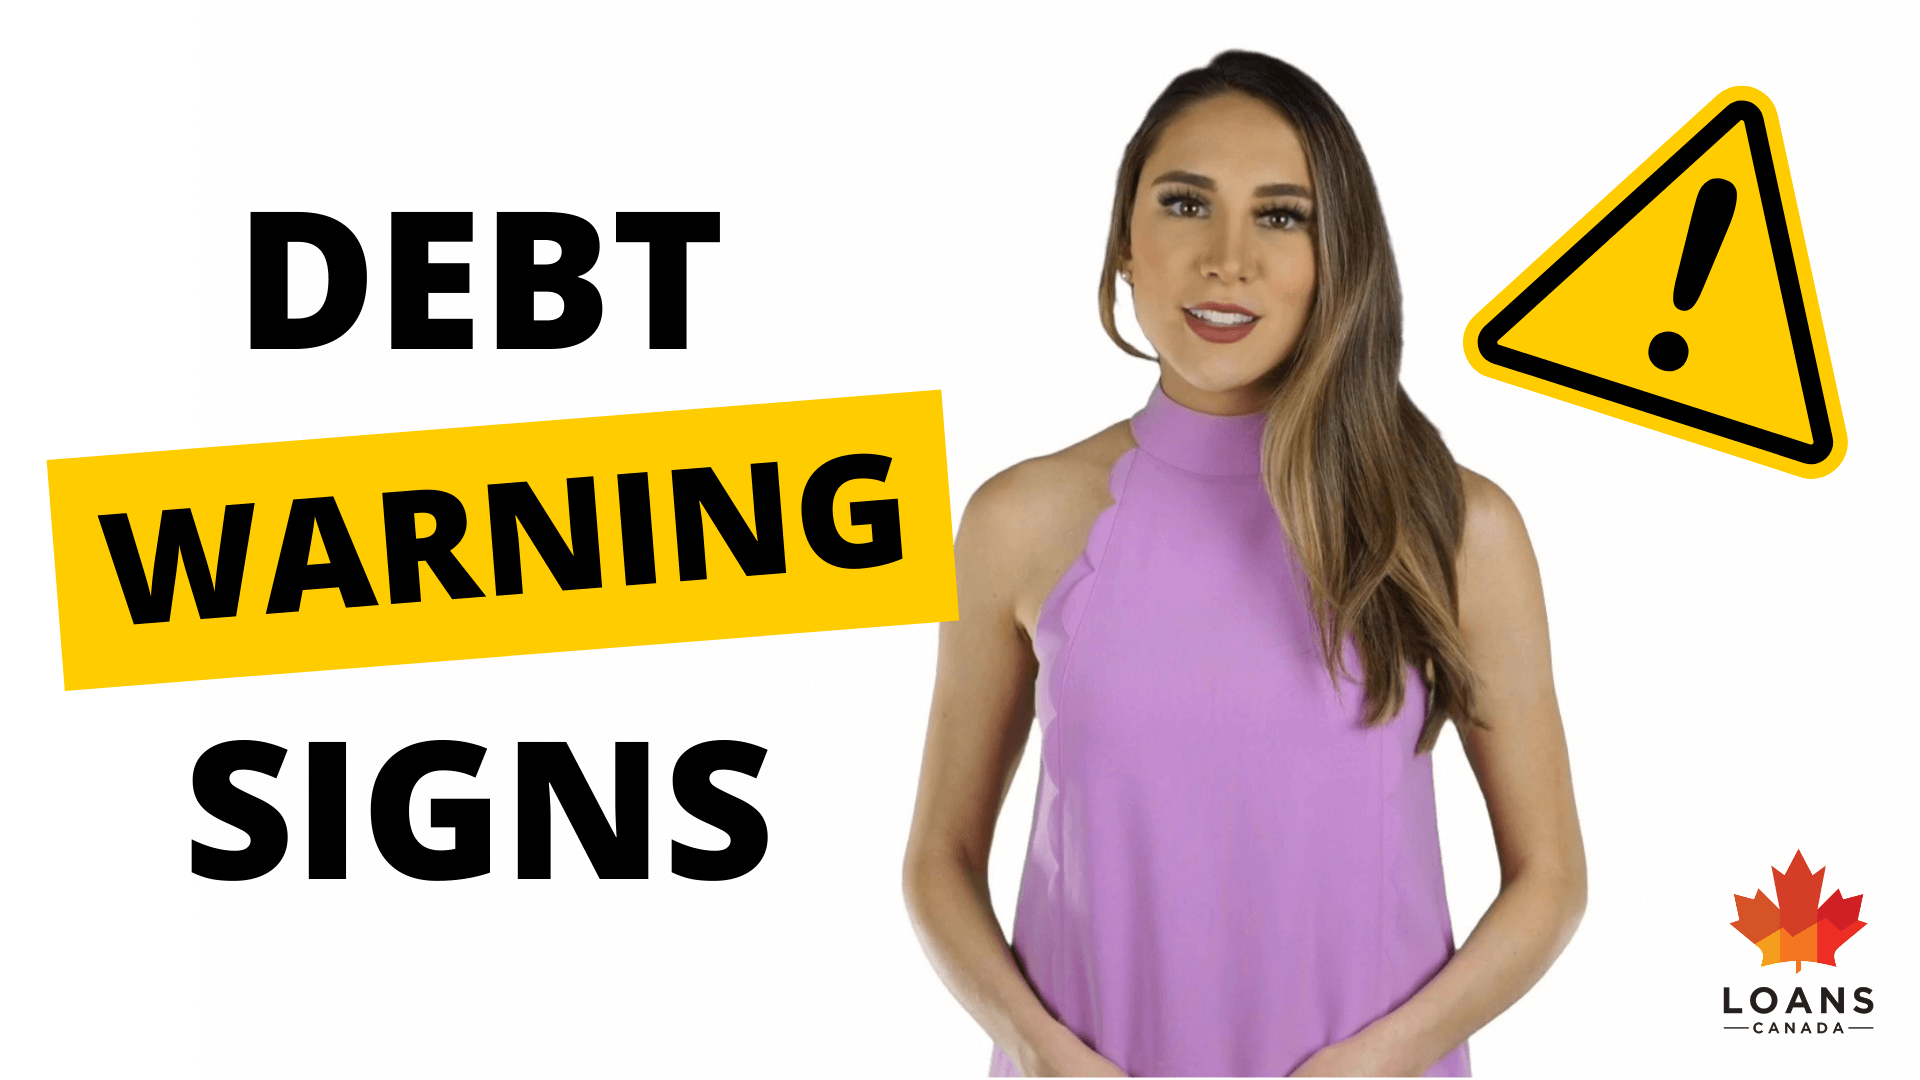 Seek Help Immediately if You Have Any of These 5 Debt Warning Signs